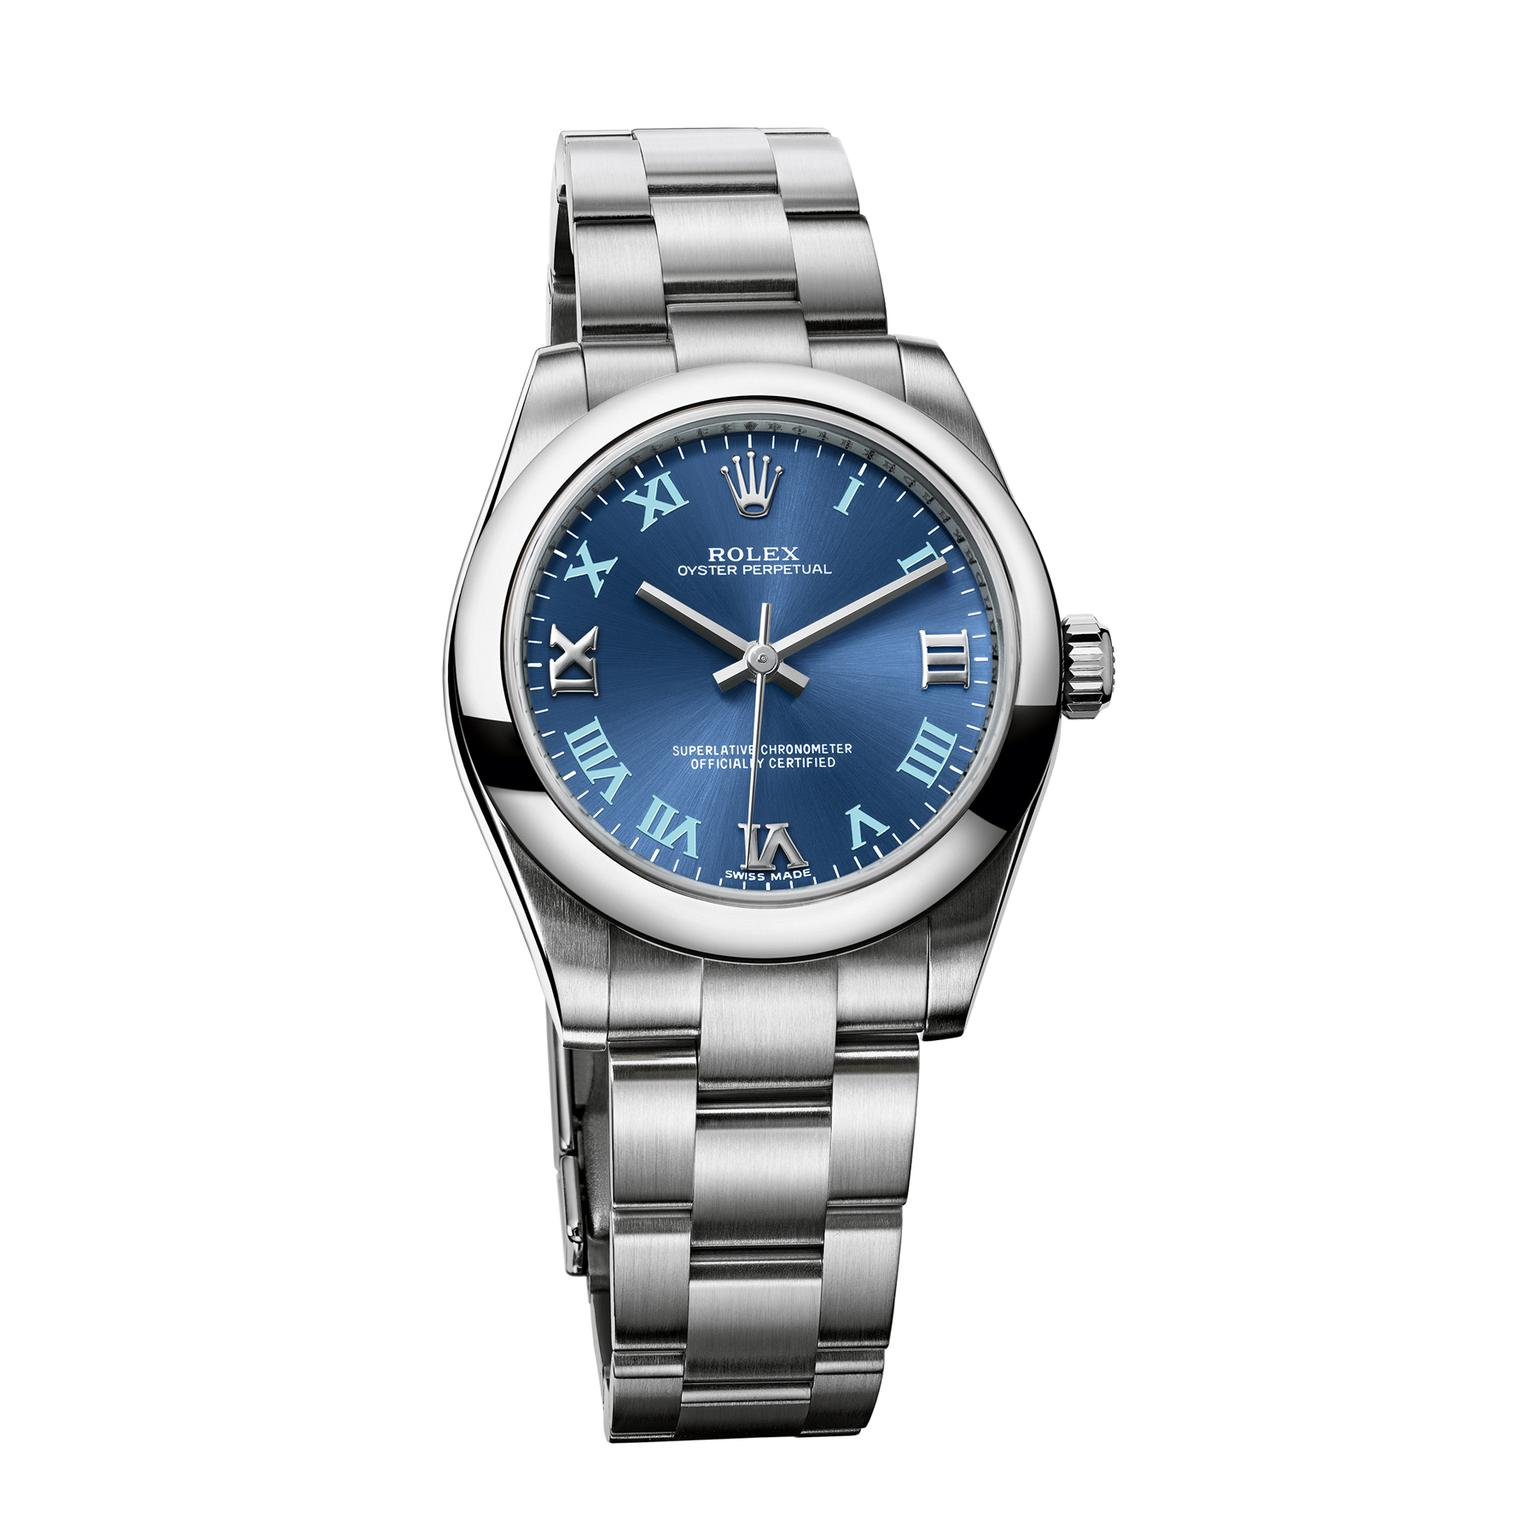 Rolex Oyster Perpetual watch 31mm in stainless steel with a blue dial